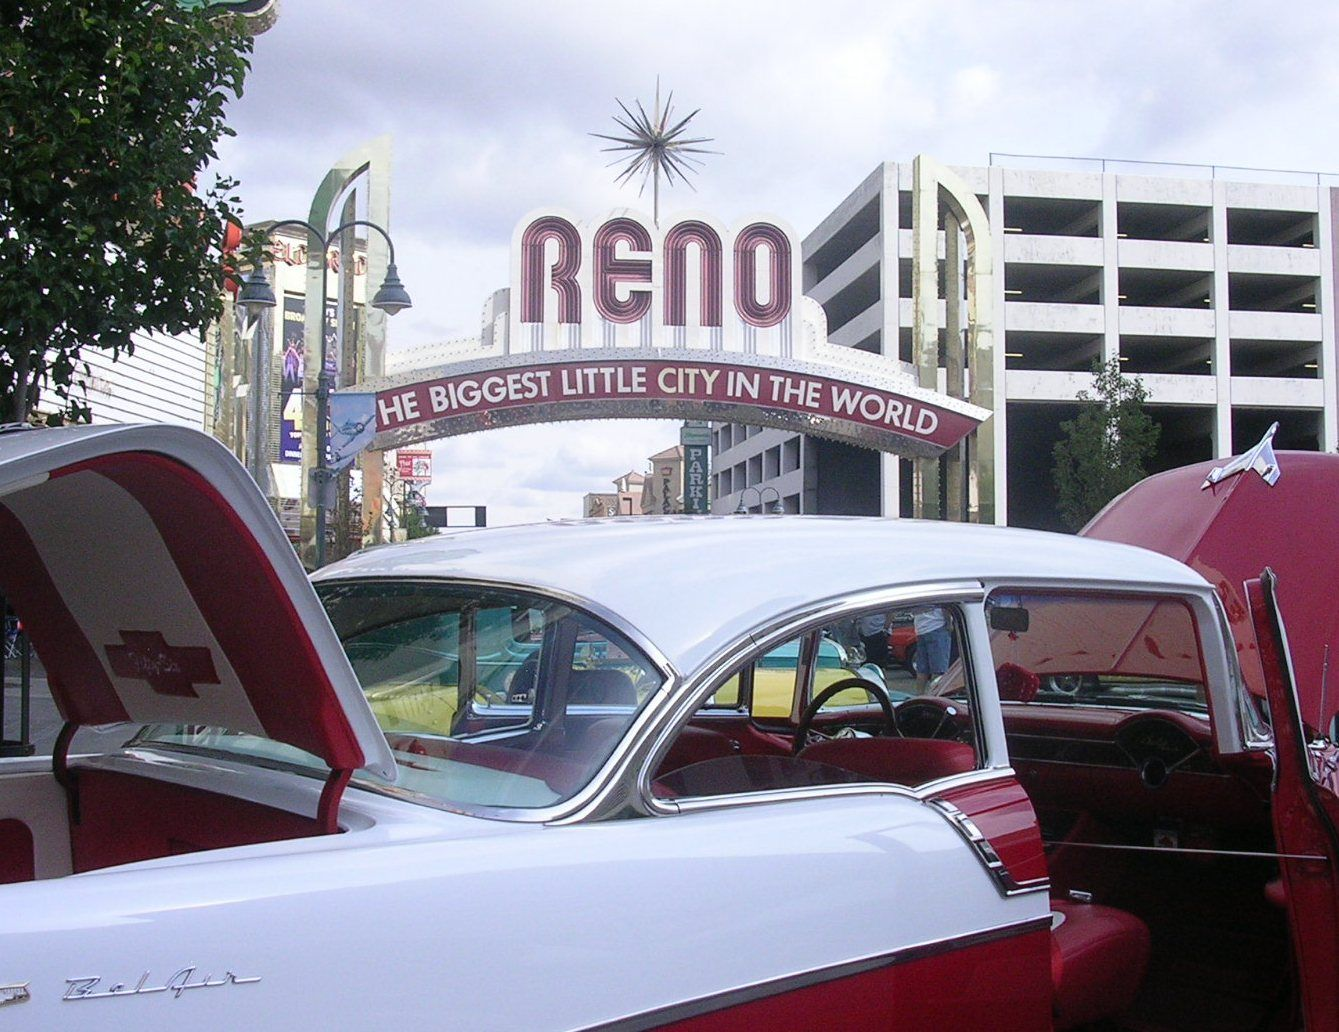 Rock Park Sparks NV | Events in Reno Sparks Nevada Hot August Nights